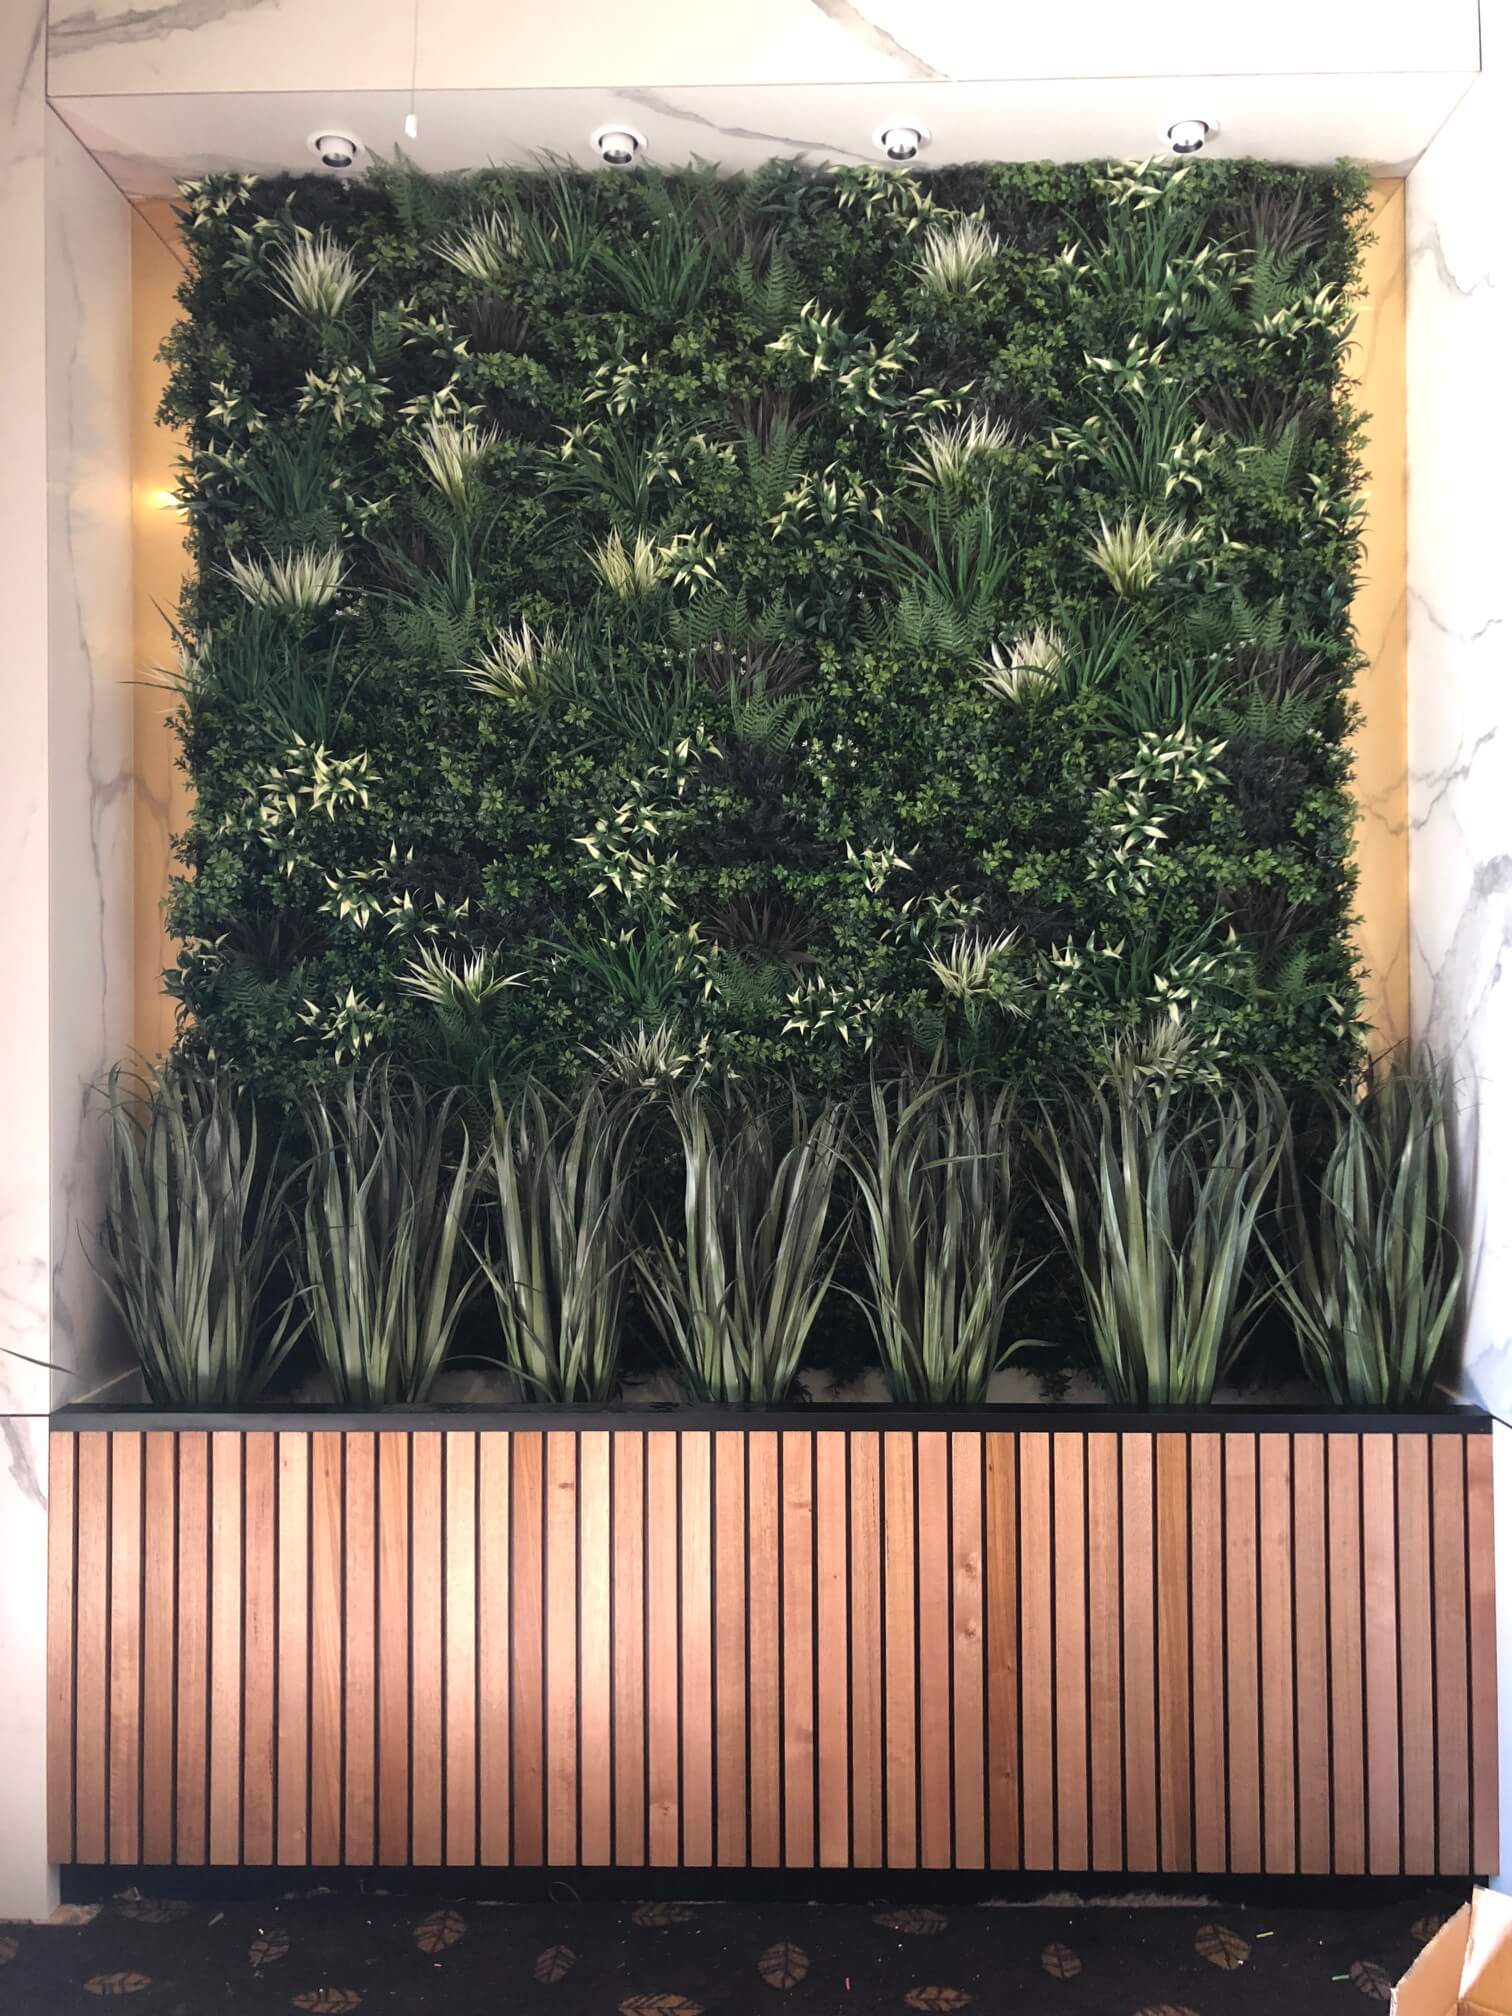 Hotel fitout with a green wall and artificial grasses in a room divider